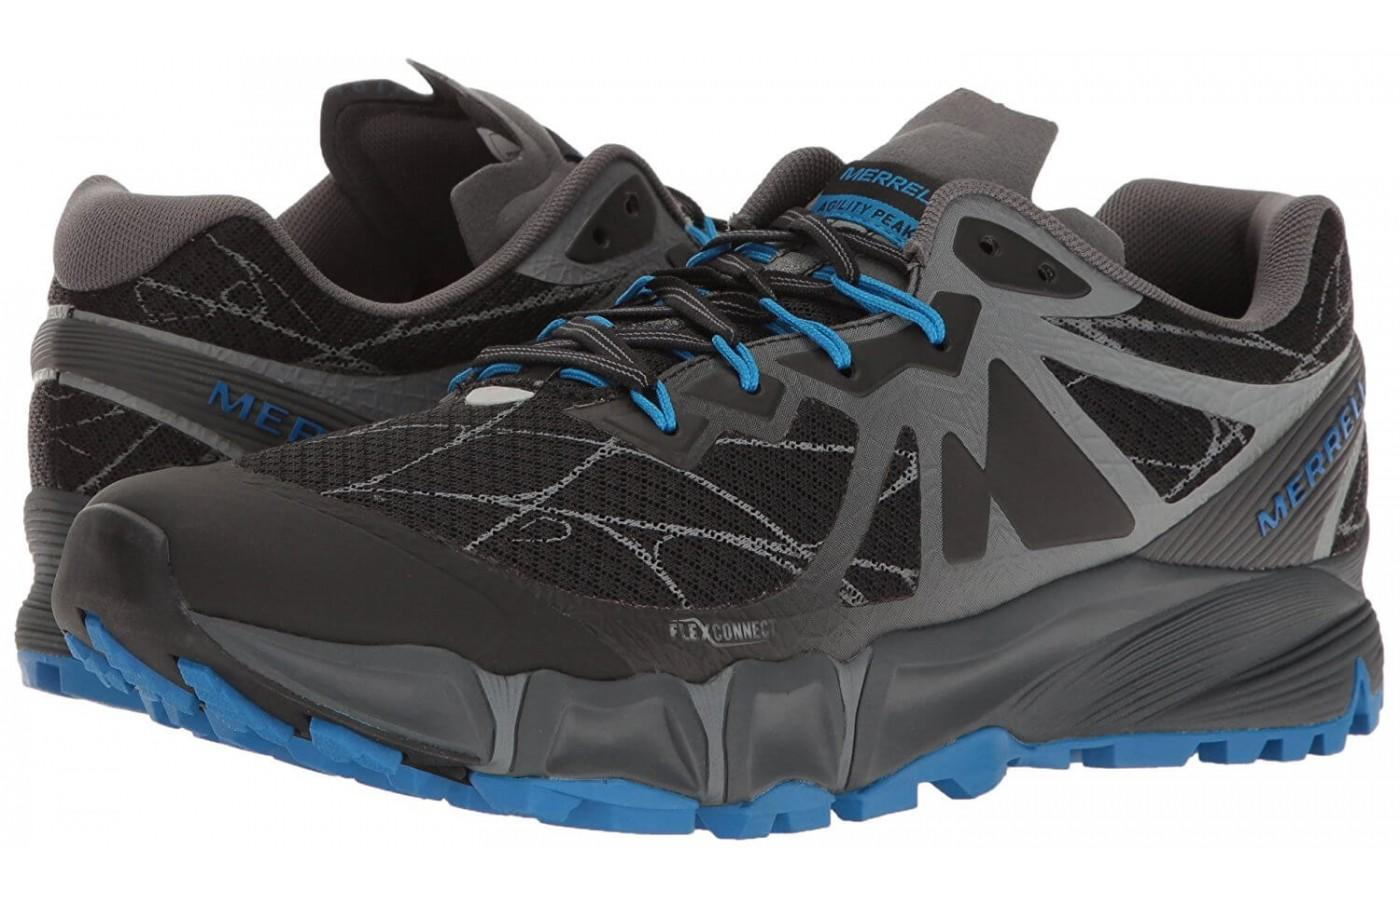 Flexible Trail Running shoes